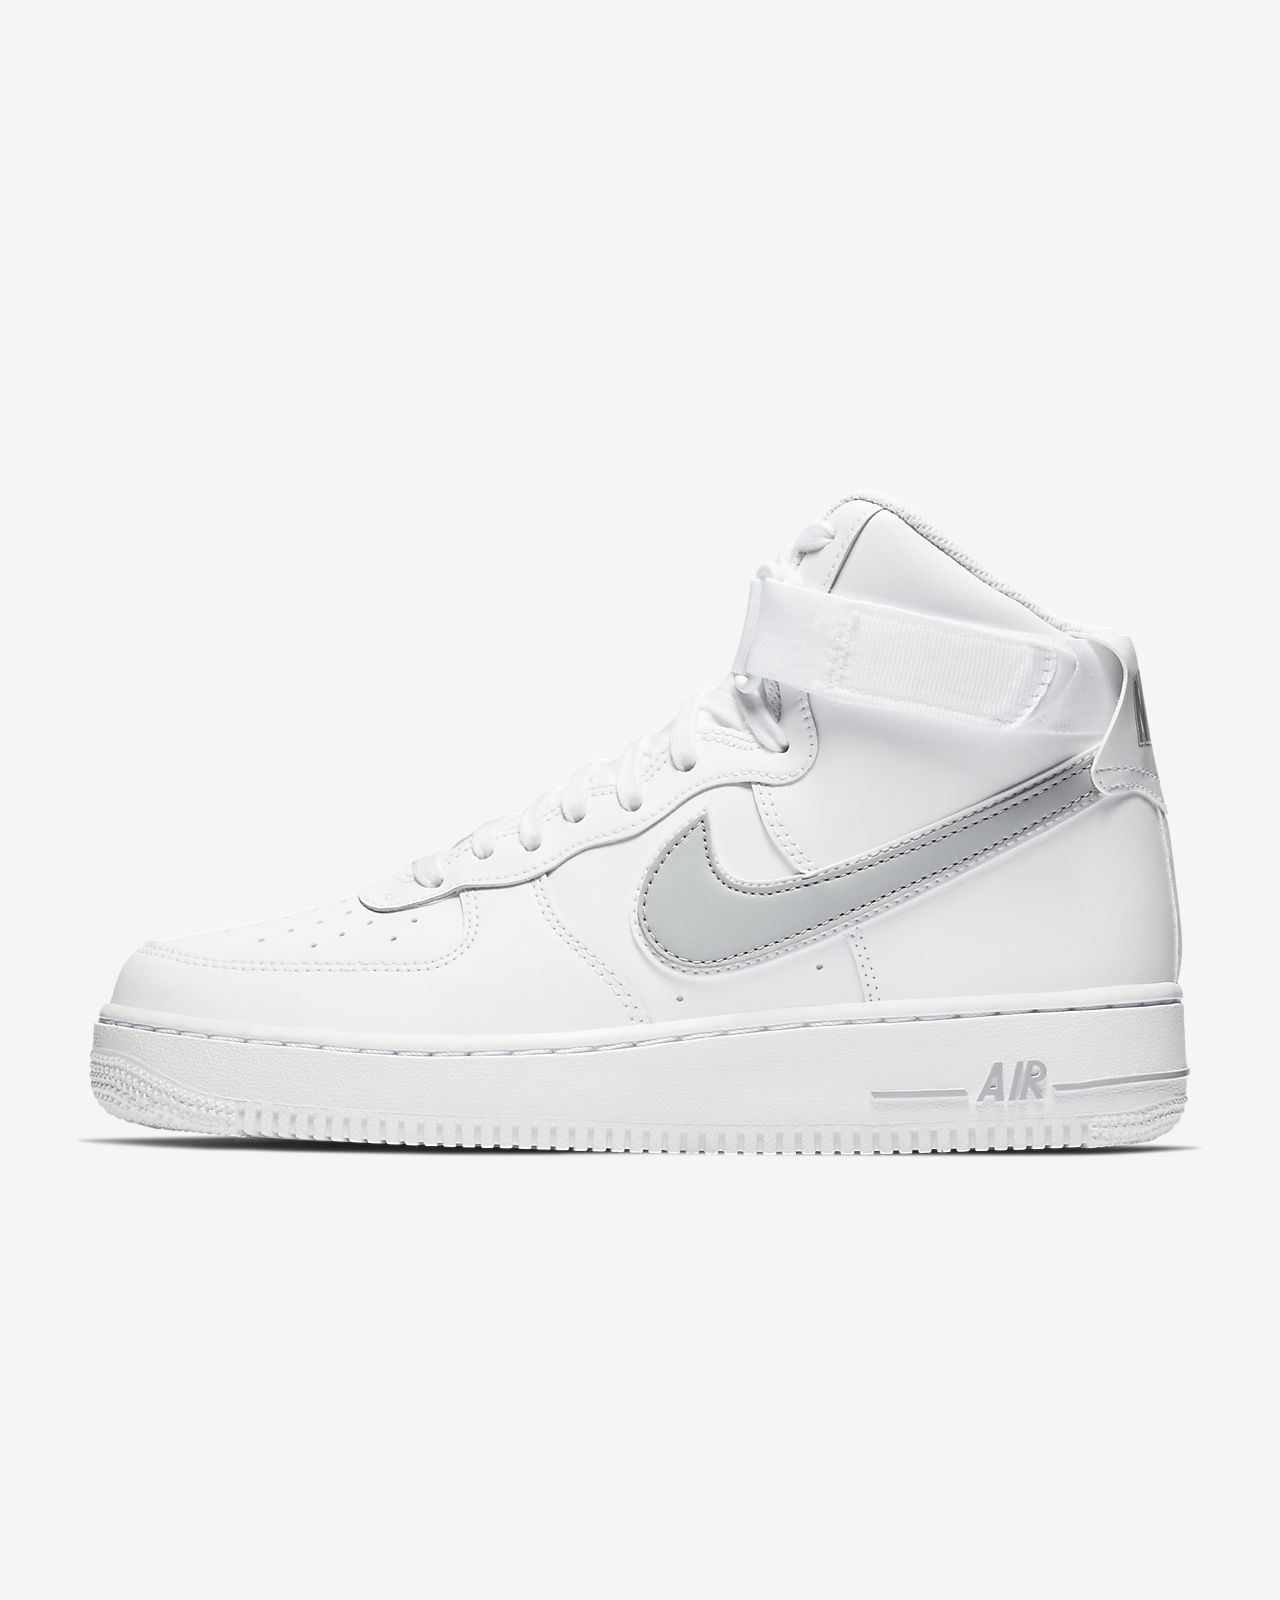 the best attitude b970f 786a7 ... Calzado para hombre Nike Air Force 1 High 07 3